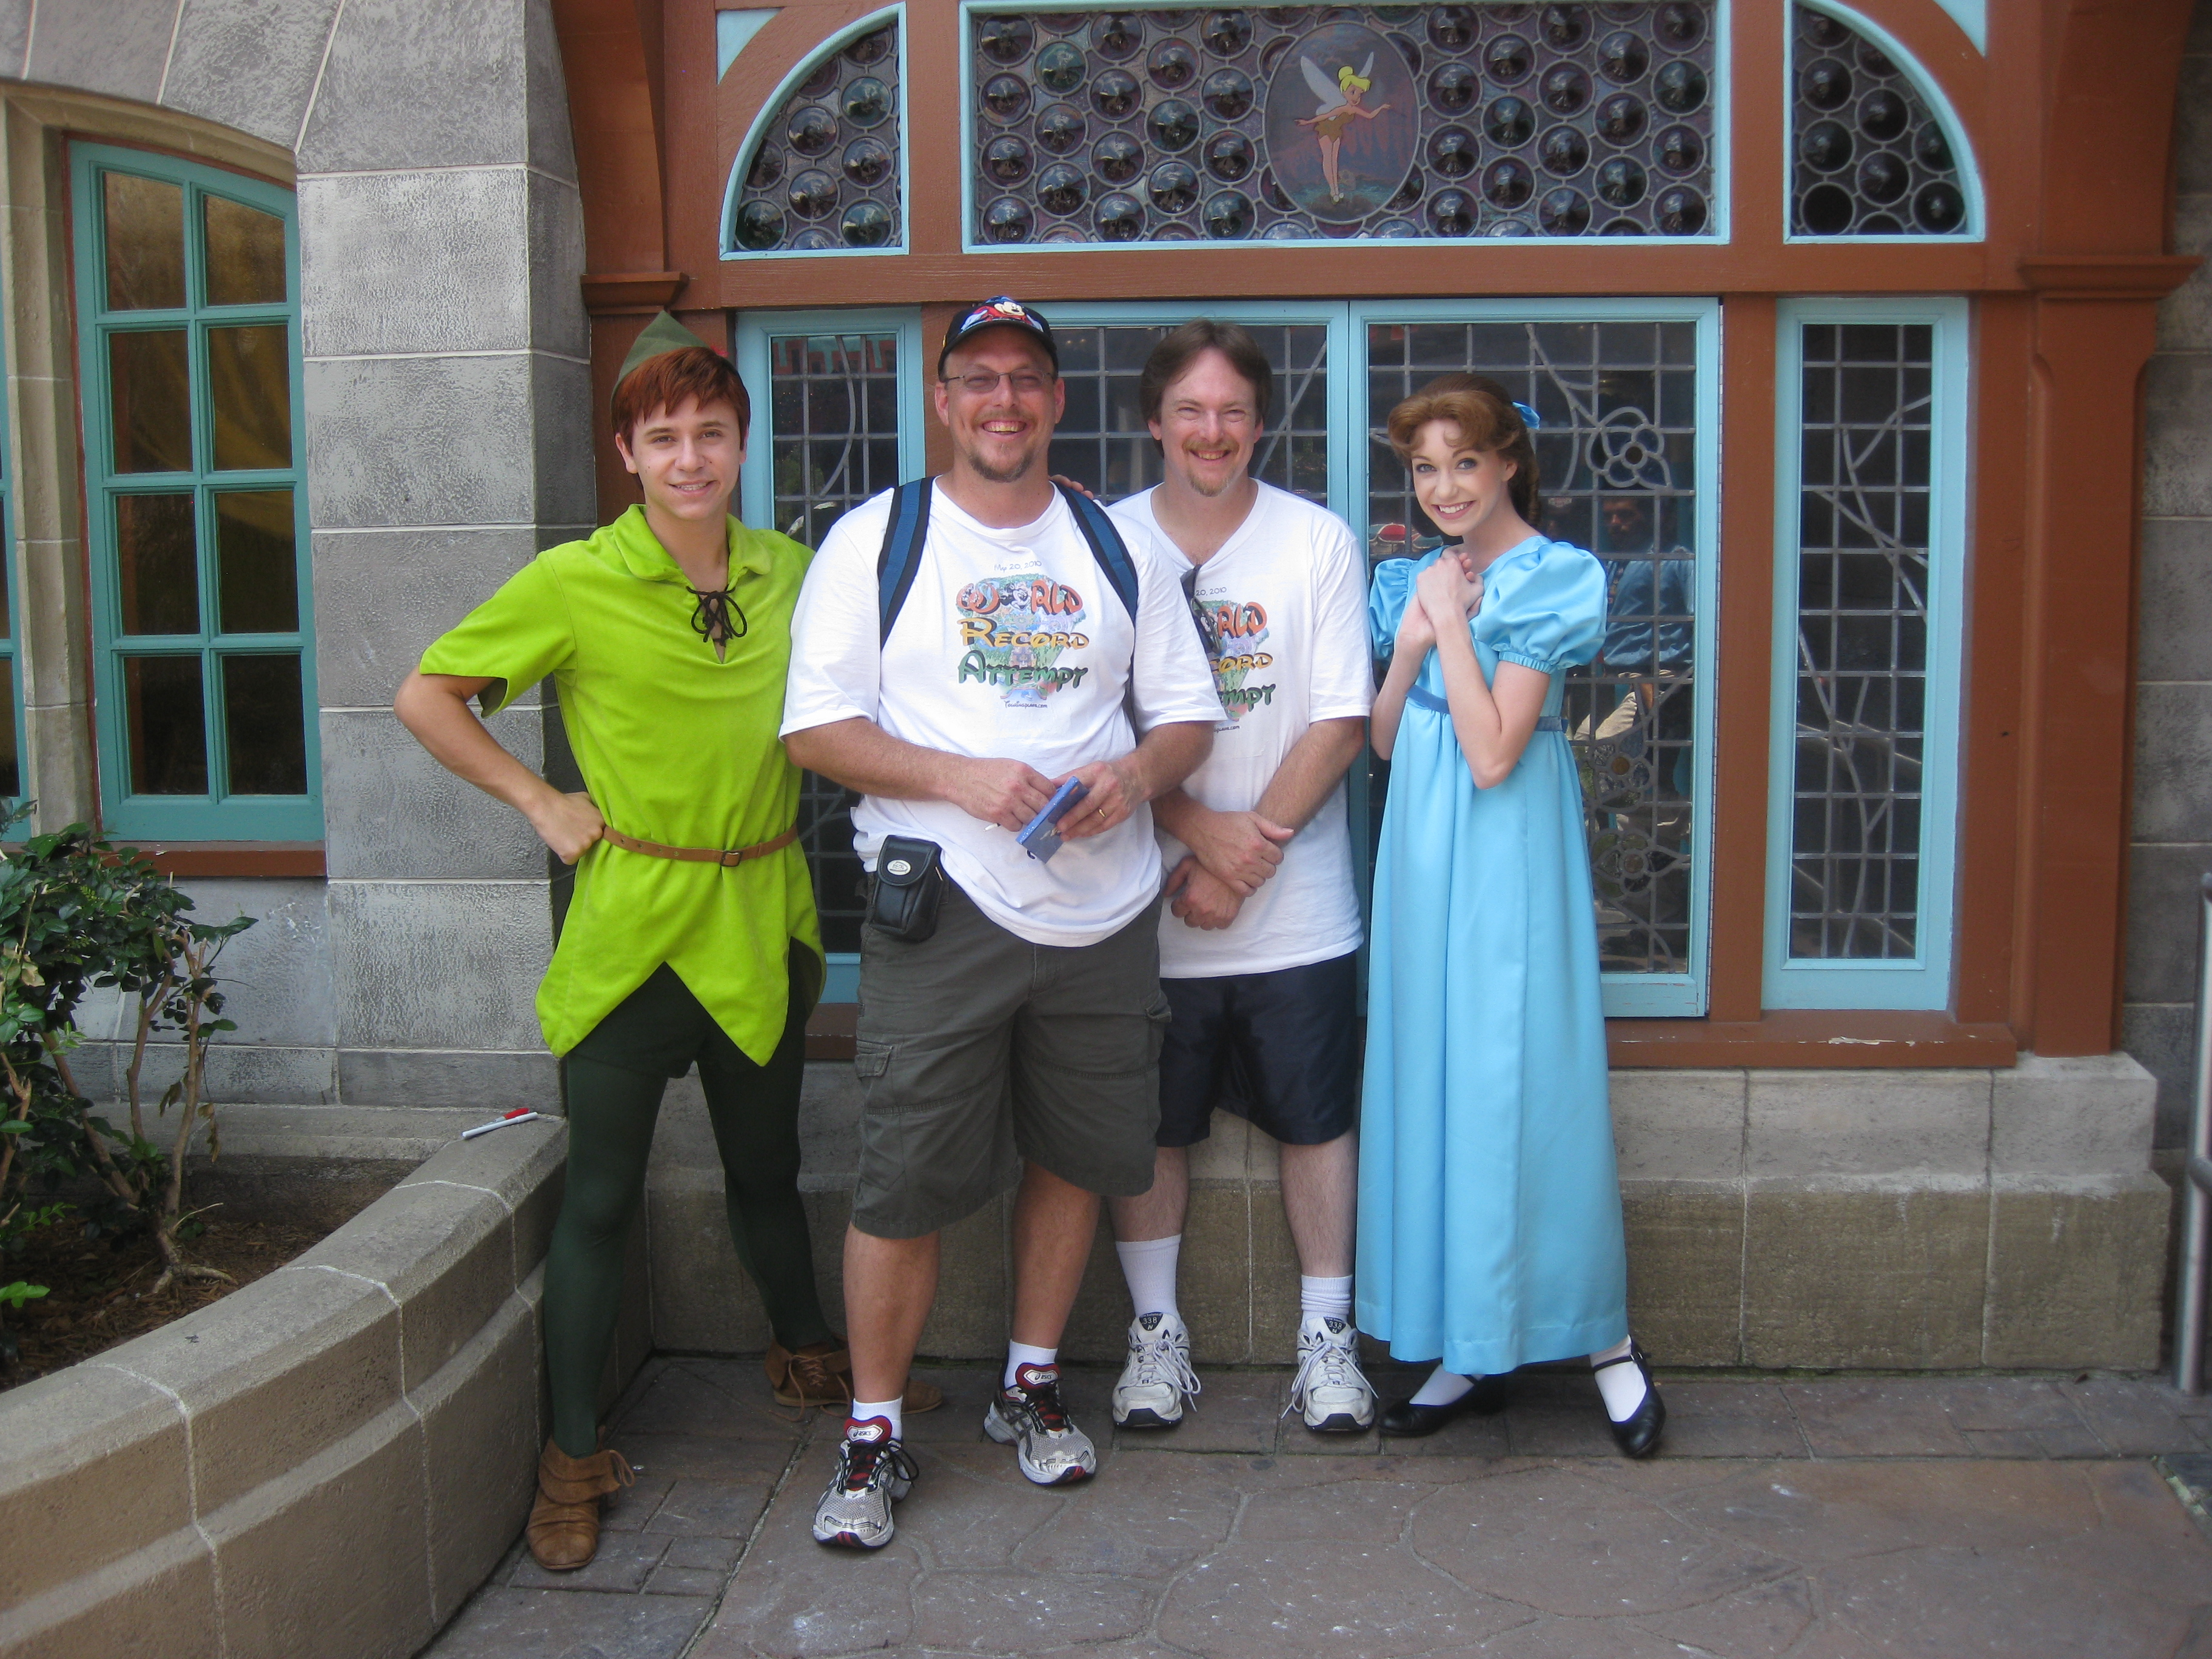 Wendy kennythepirates unofficial guide to disney world peter pan and wendy 2010 kristyandbryce Image collections